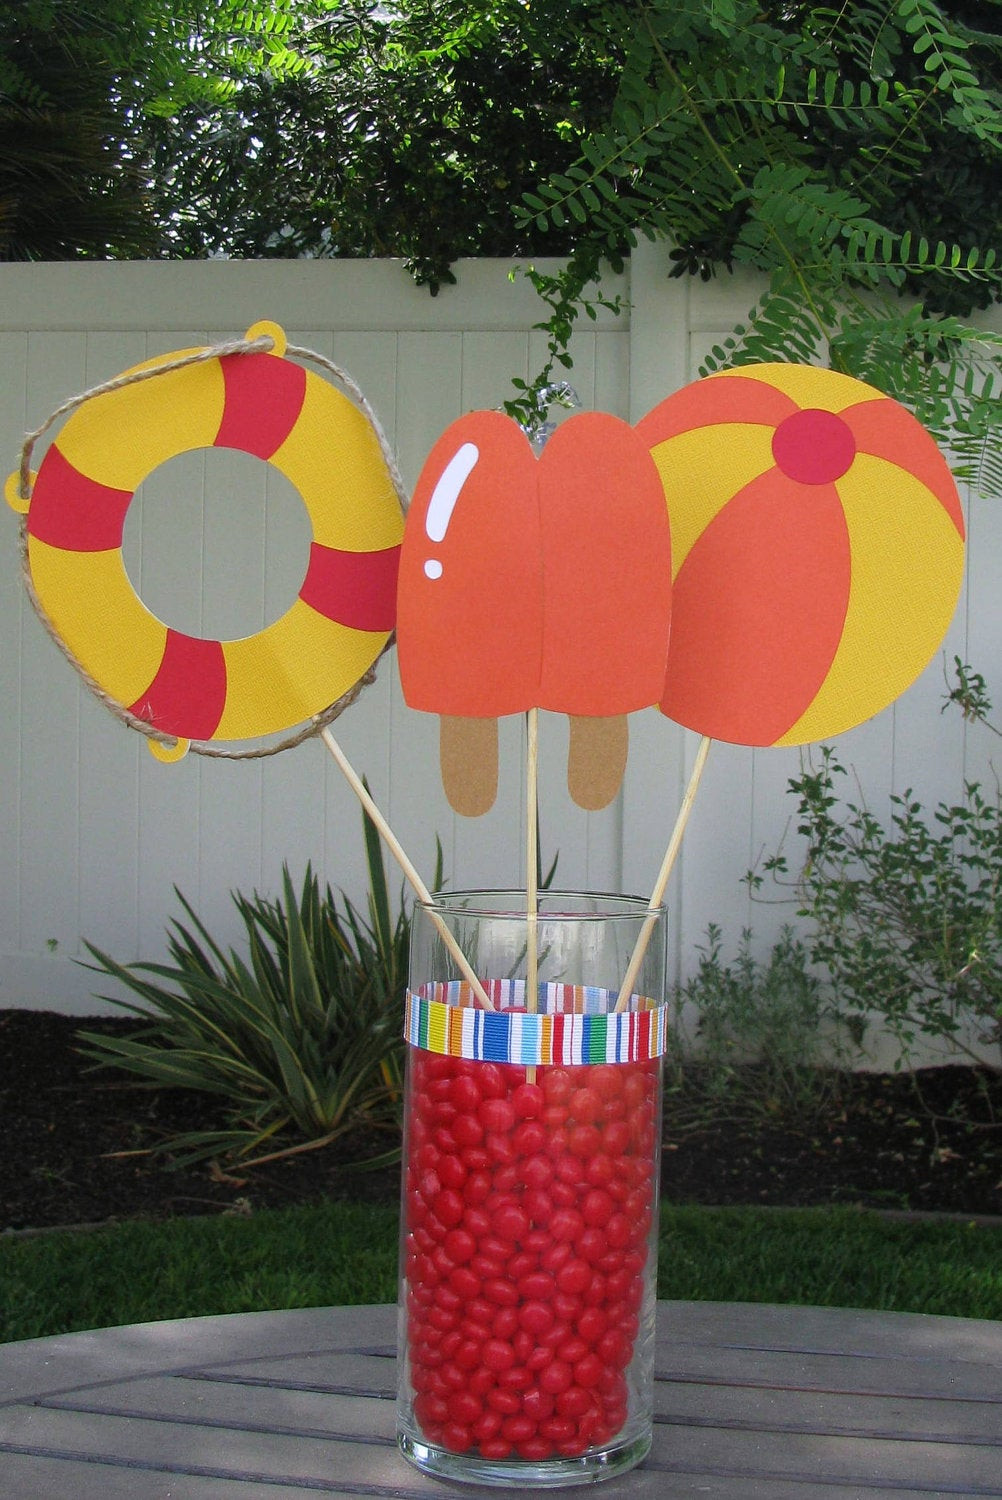 Pool Party Centerpieces Ideas  Pool Party Table Decorations Set of 3 MADE TO ORDER